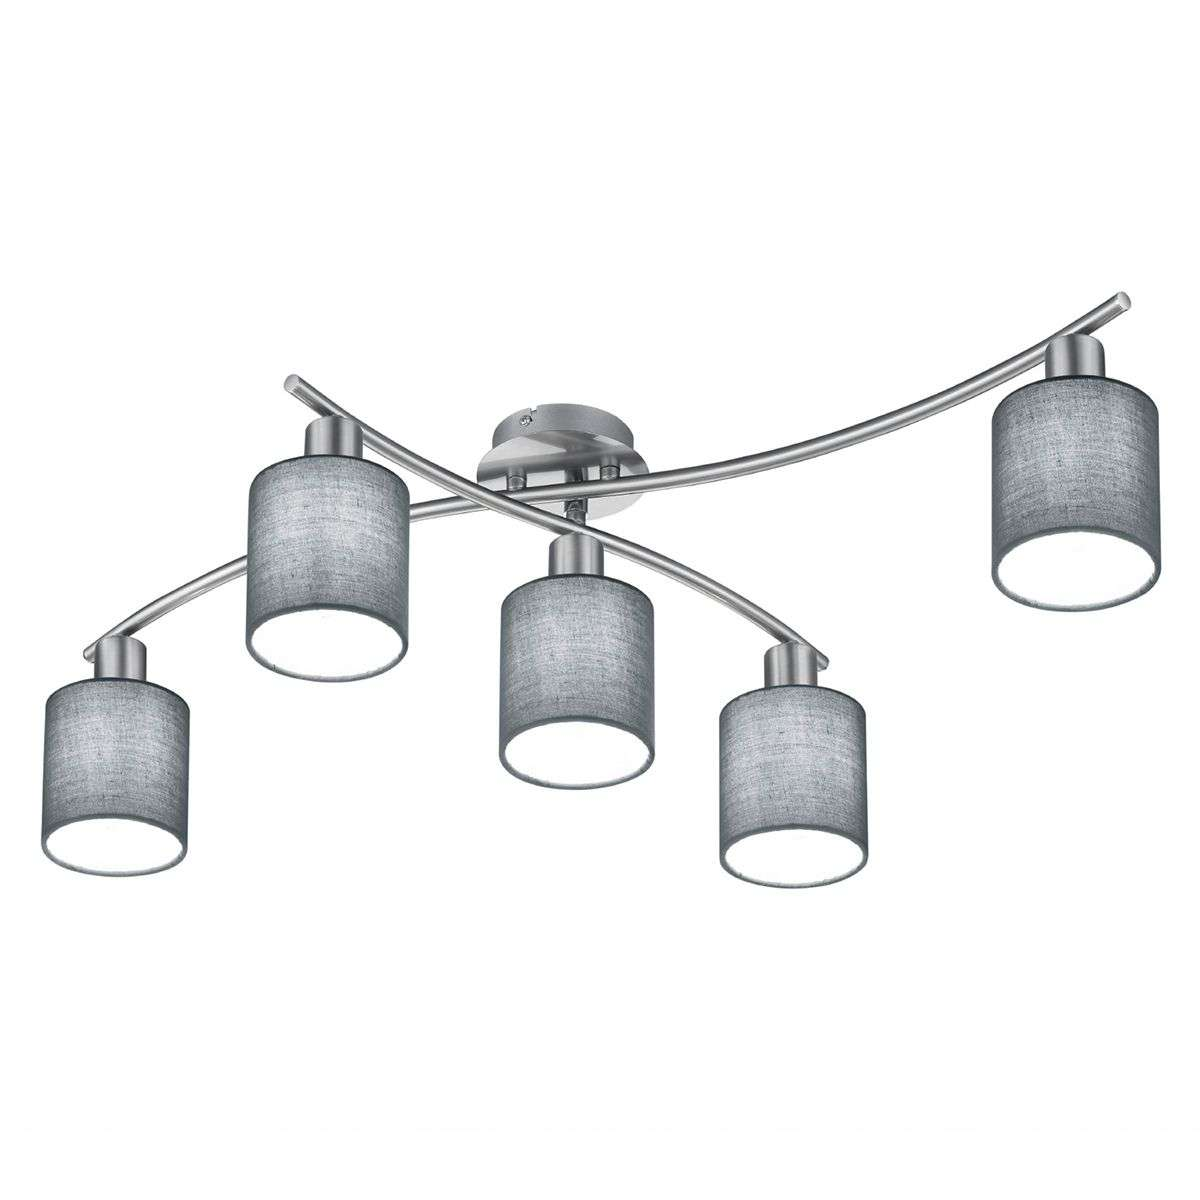 Ceiling light garda five bulb with grey lampshades lights ceiling light garda five bulb with grey lampshades 9005335 31 aloadofball Gallery